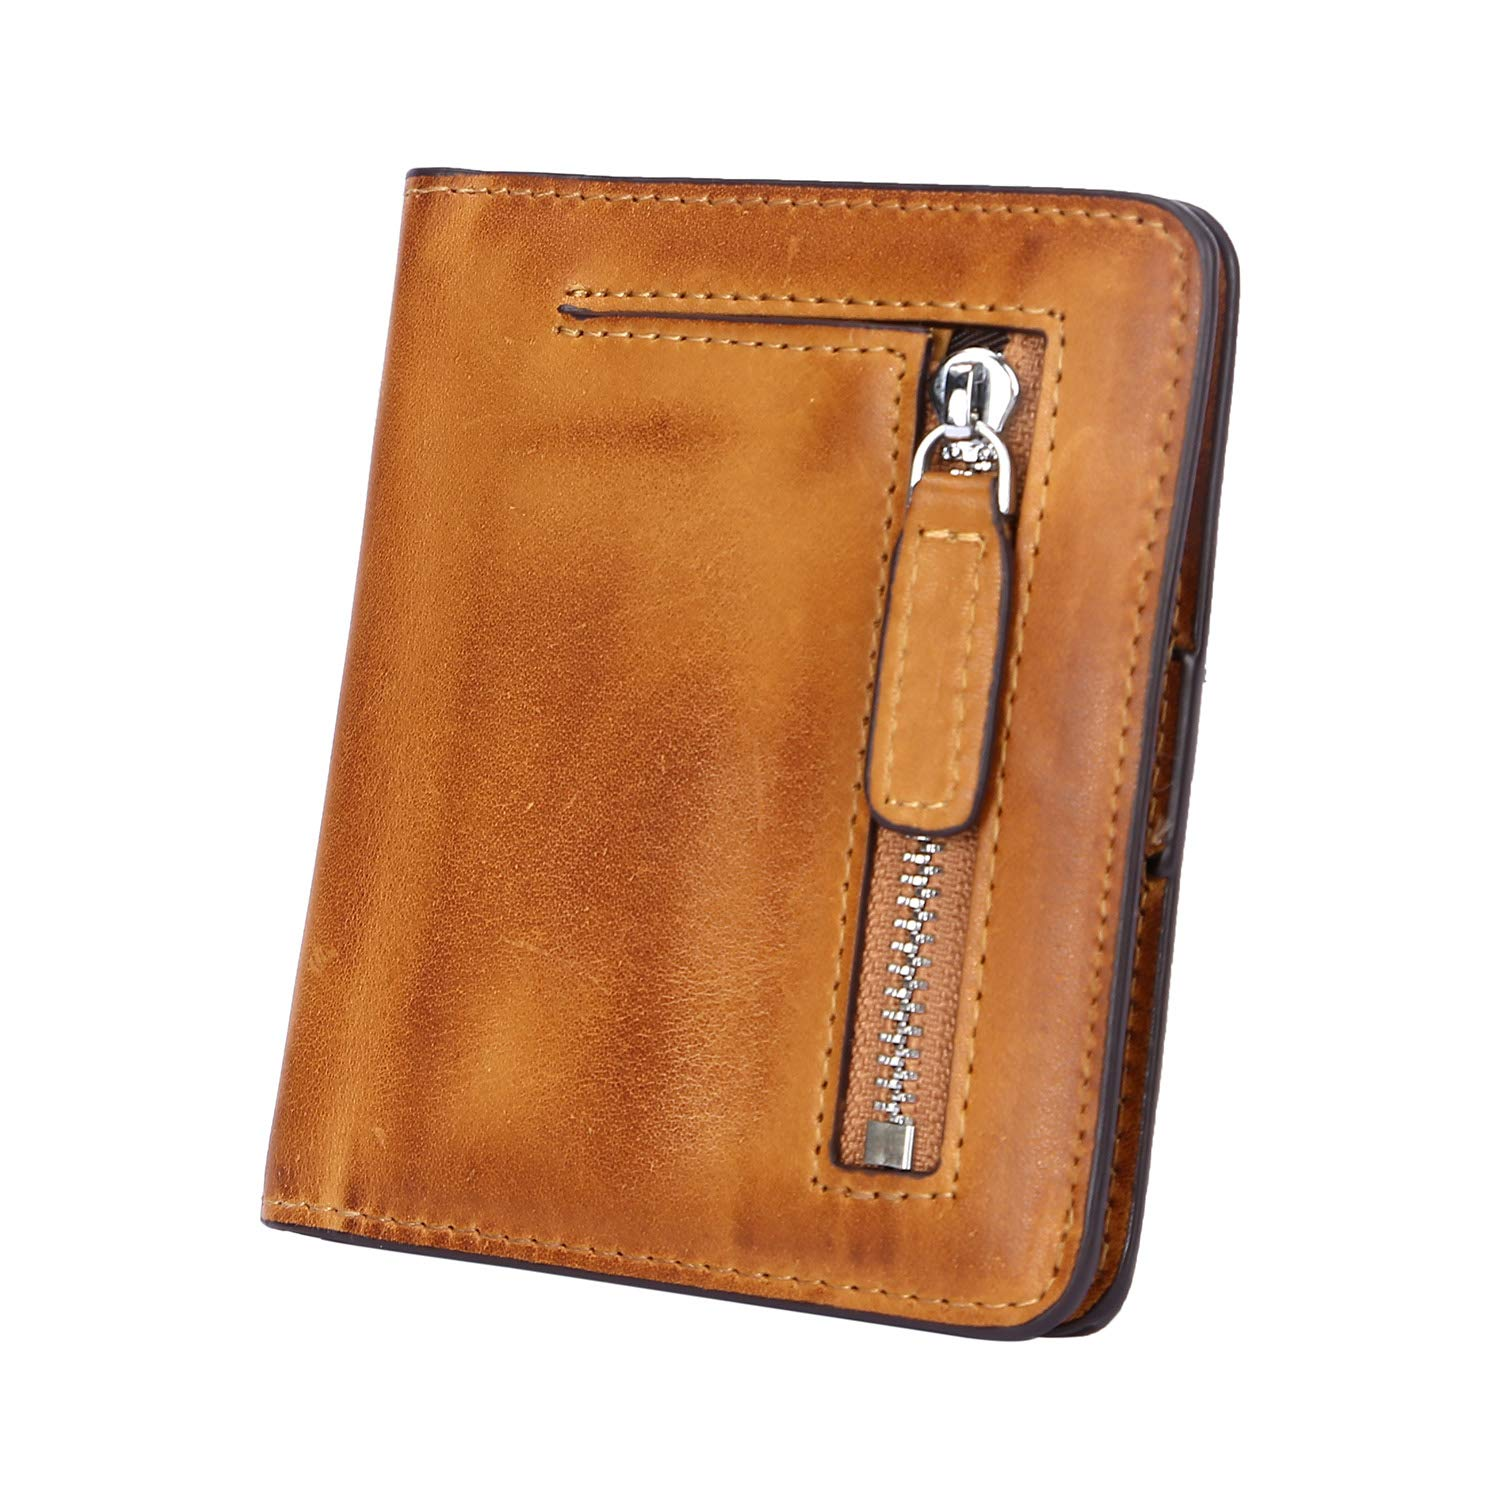 Yafeige Women's RFID Blocking Small Compact Bi-fold Leather Pocket Wallet Mini Slim Purse(Retro Brown)